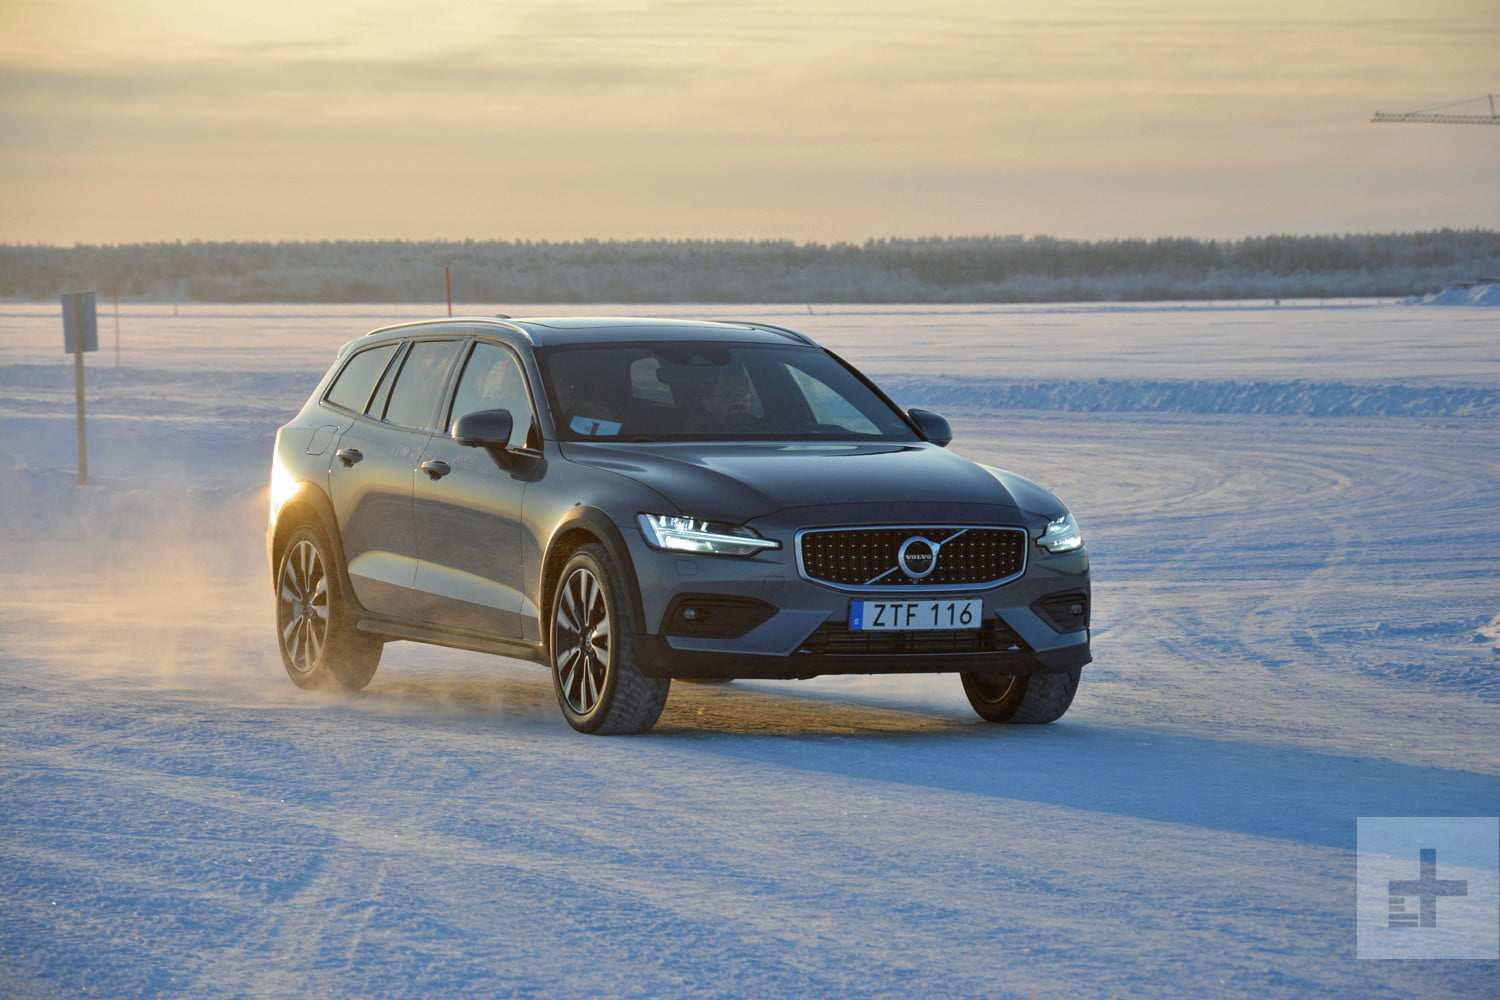 37 Concept of 2020 Volvo V60 Wagon Style with 2020 Volvo V60 Wagon